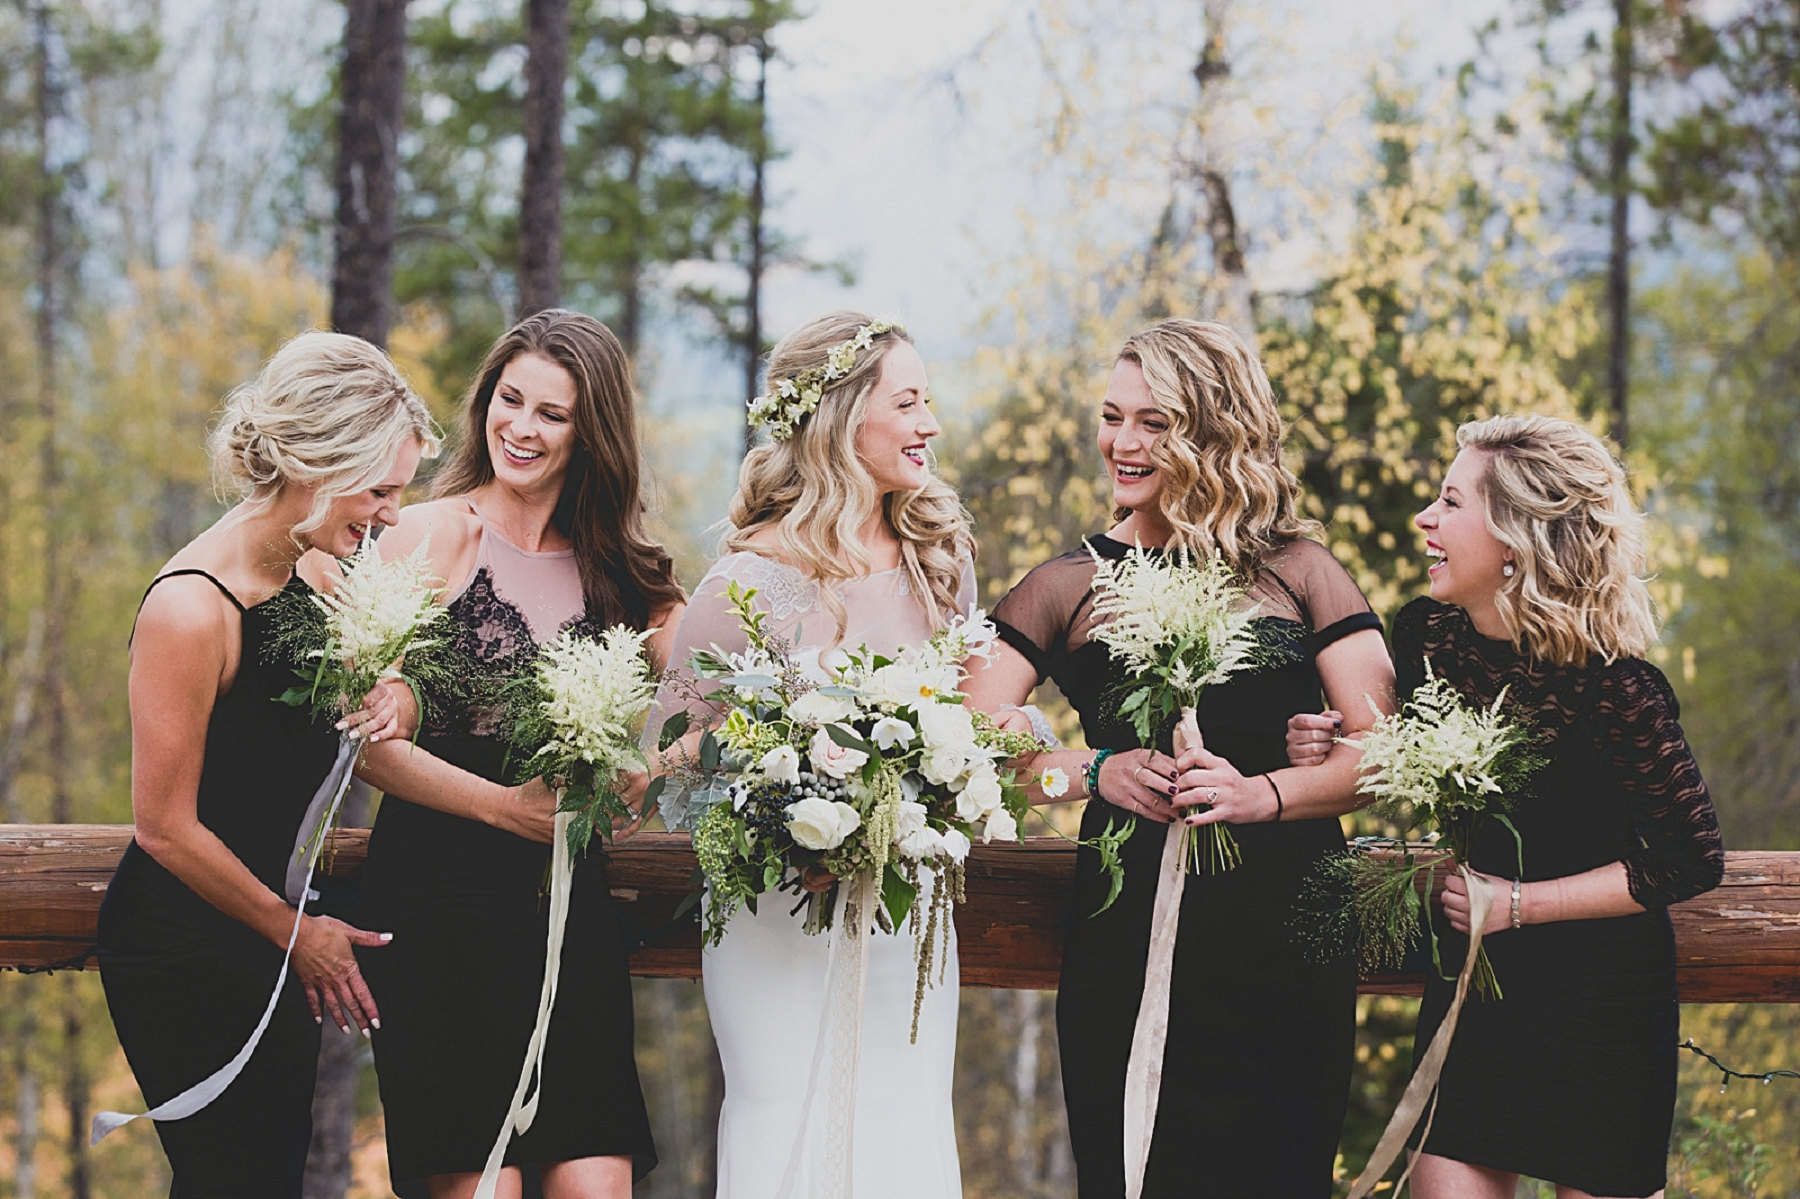 Jennifer_Mooney_Photo_glacier_park_wedding_Beargrass_florals_fall_wedding_elegant_montana_destination_velvet_bride_katie_may_dress_verona_gown_00038.jpg